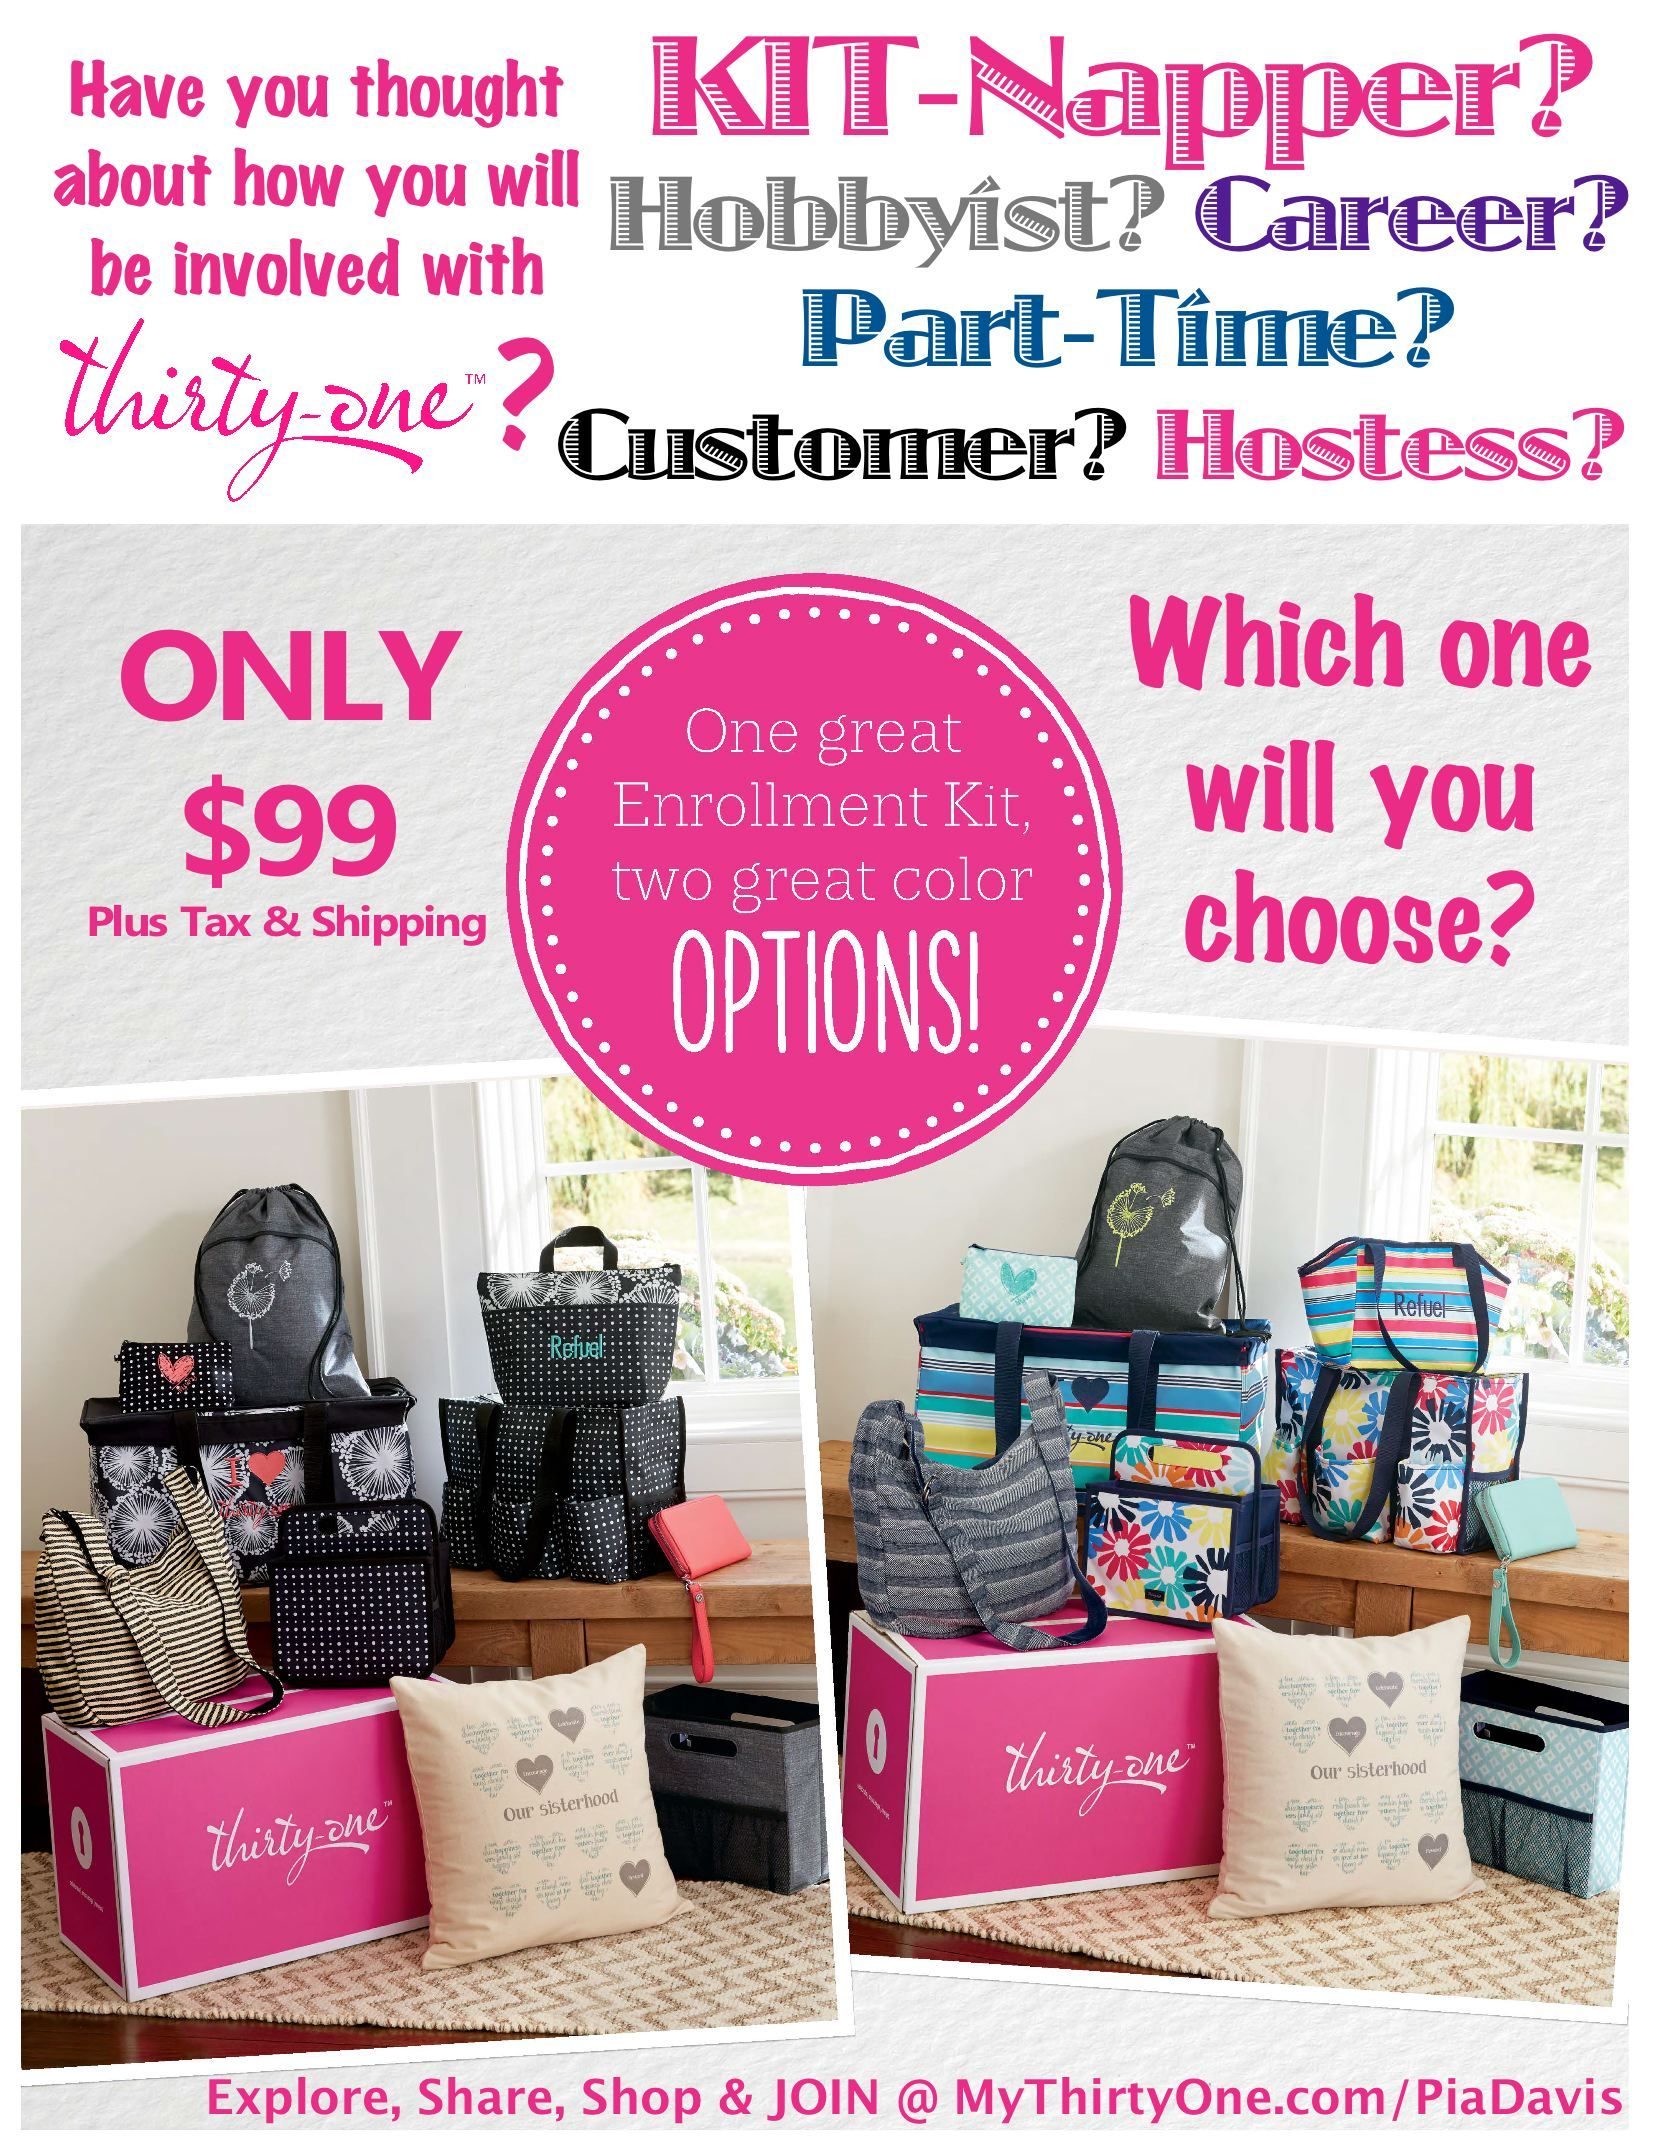 31 how are you involved with thirty one gifts kit napper career